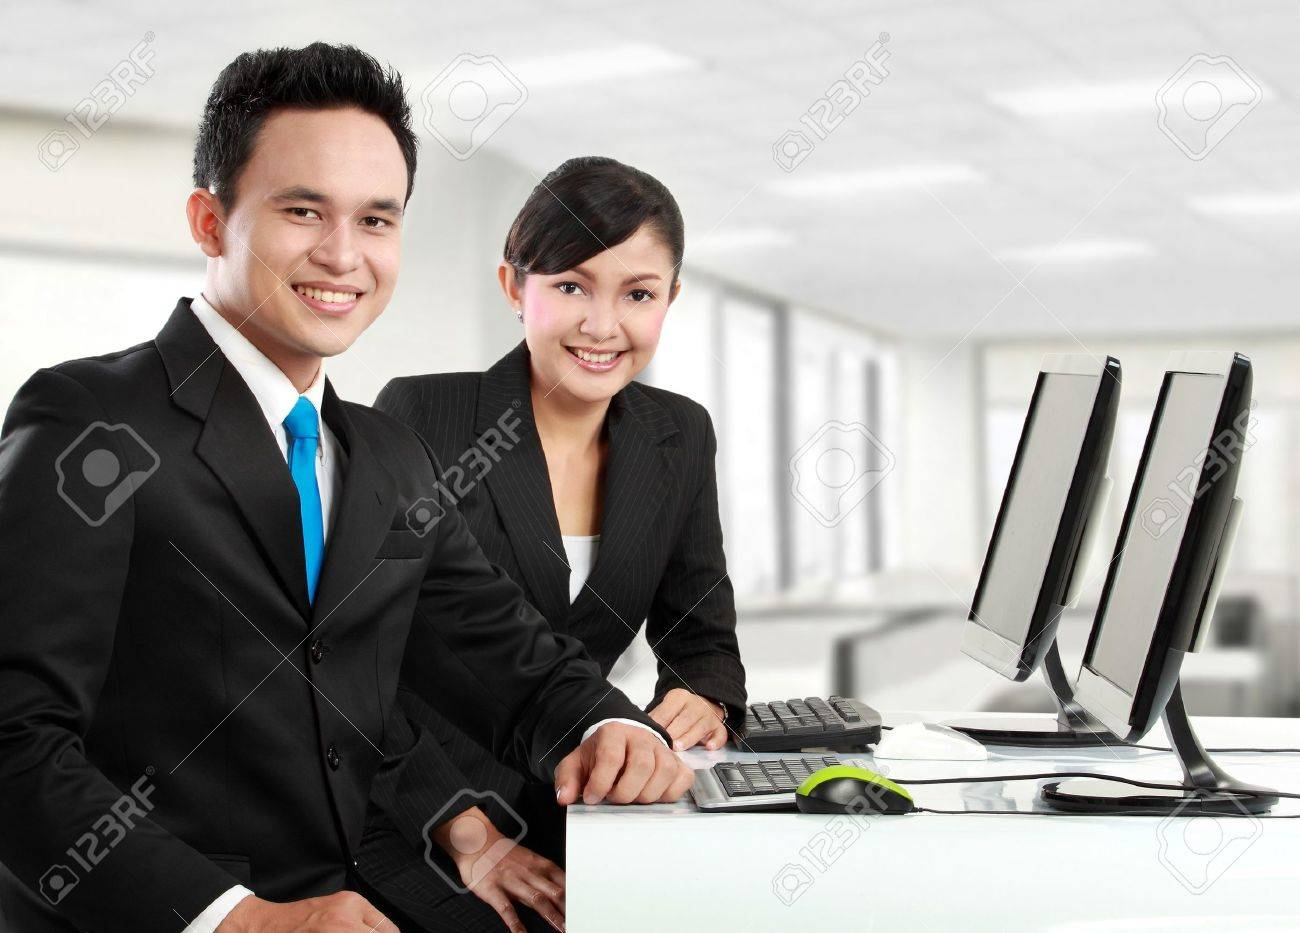 happy woman and man office worker working in the office Stock Photo - 13516248